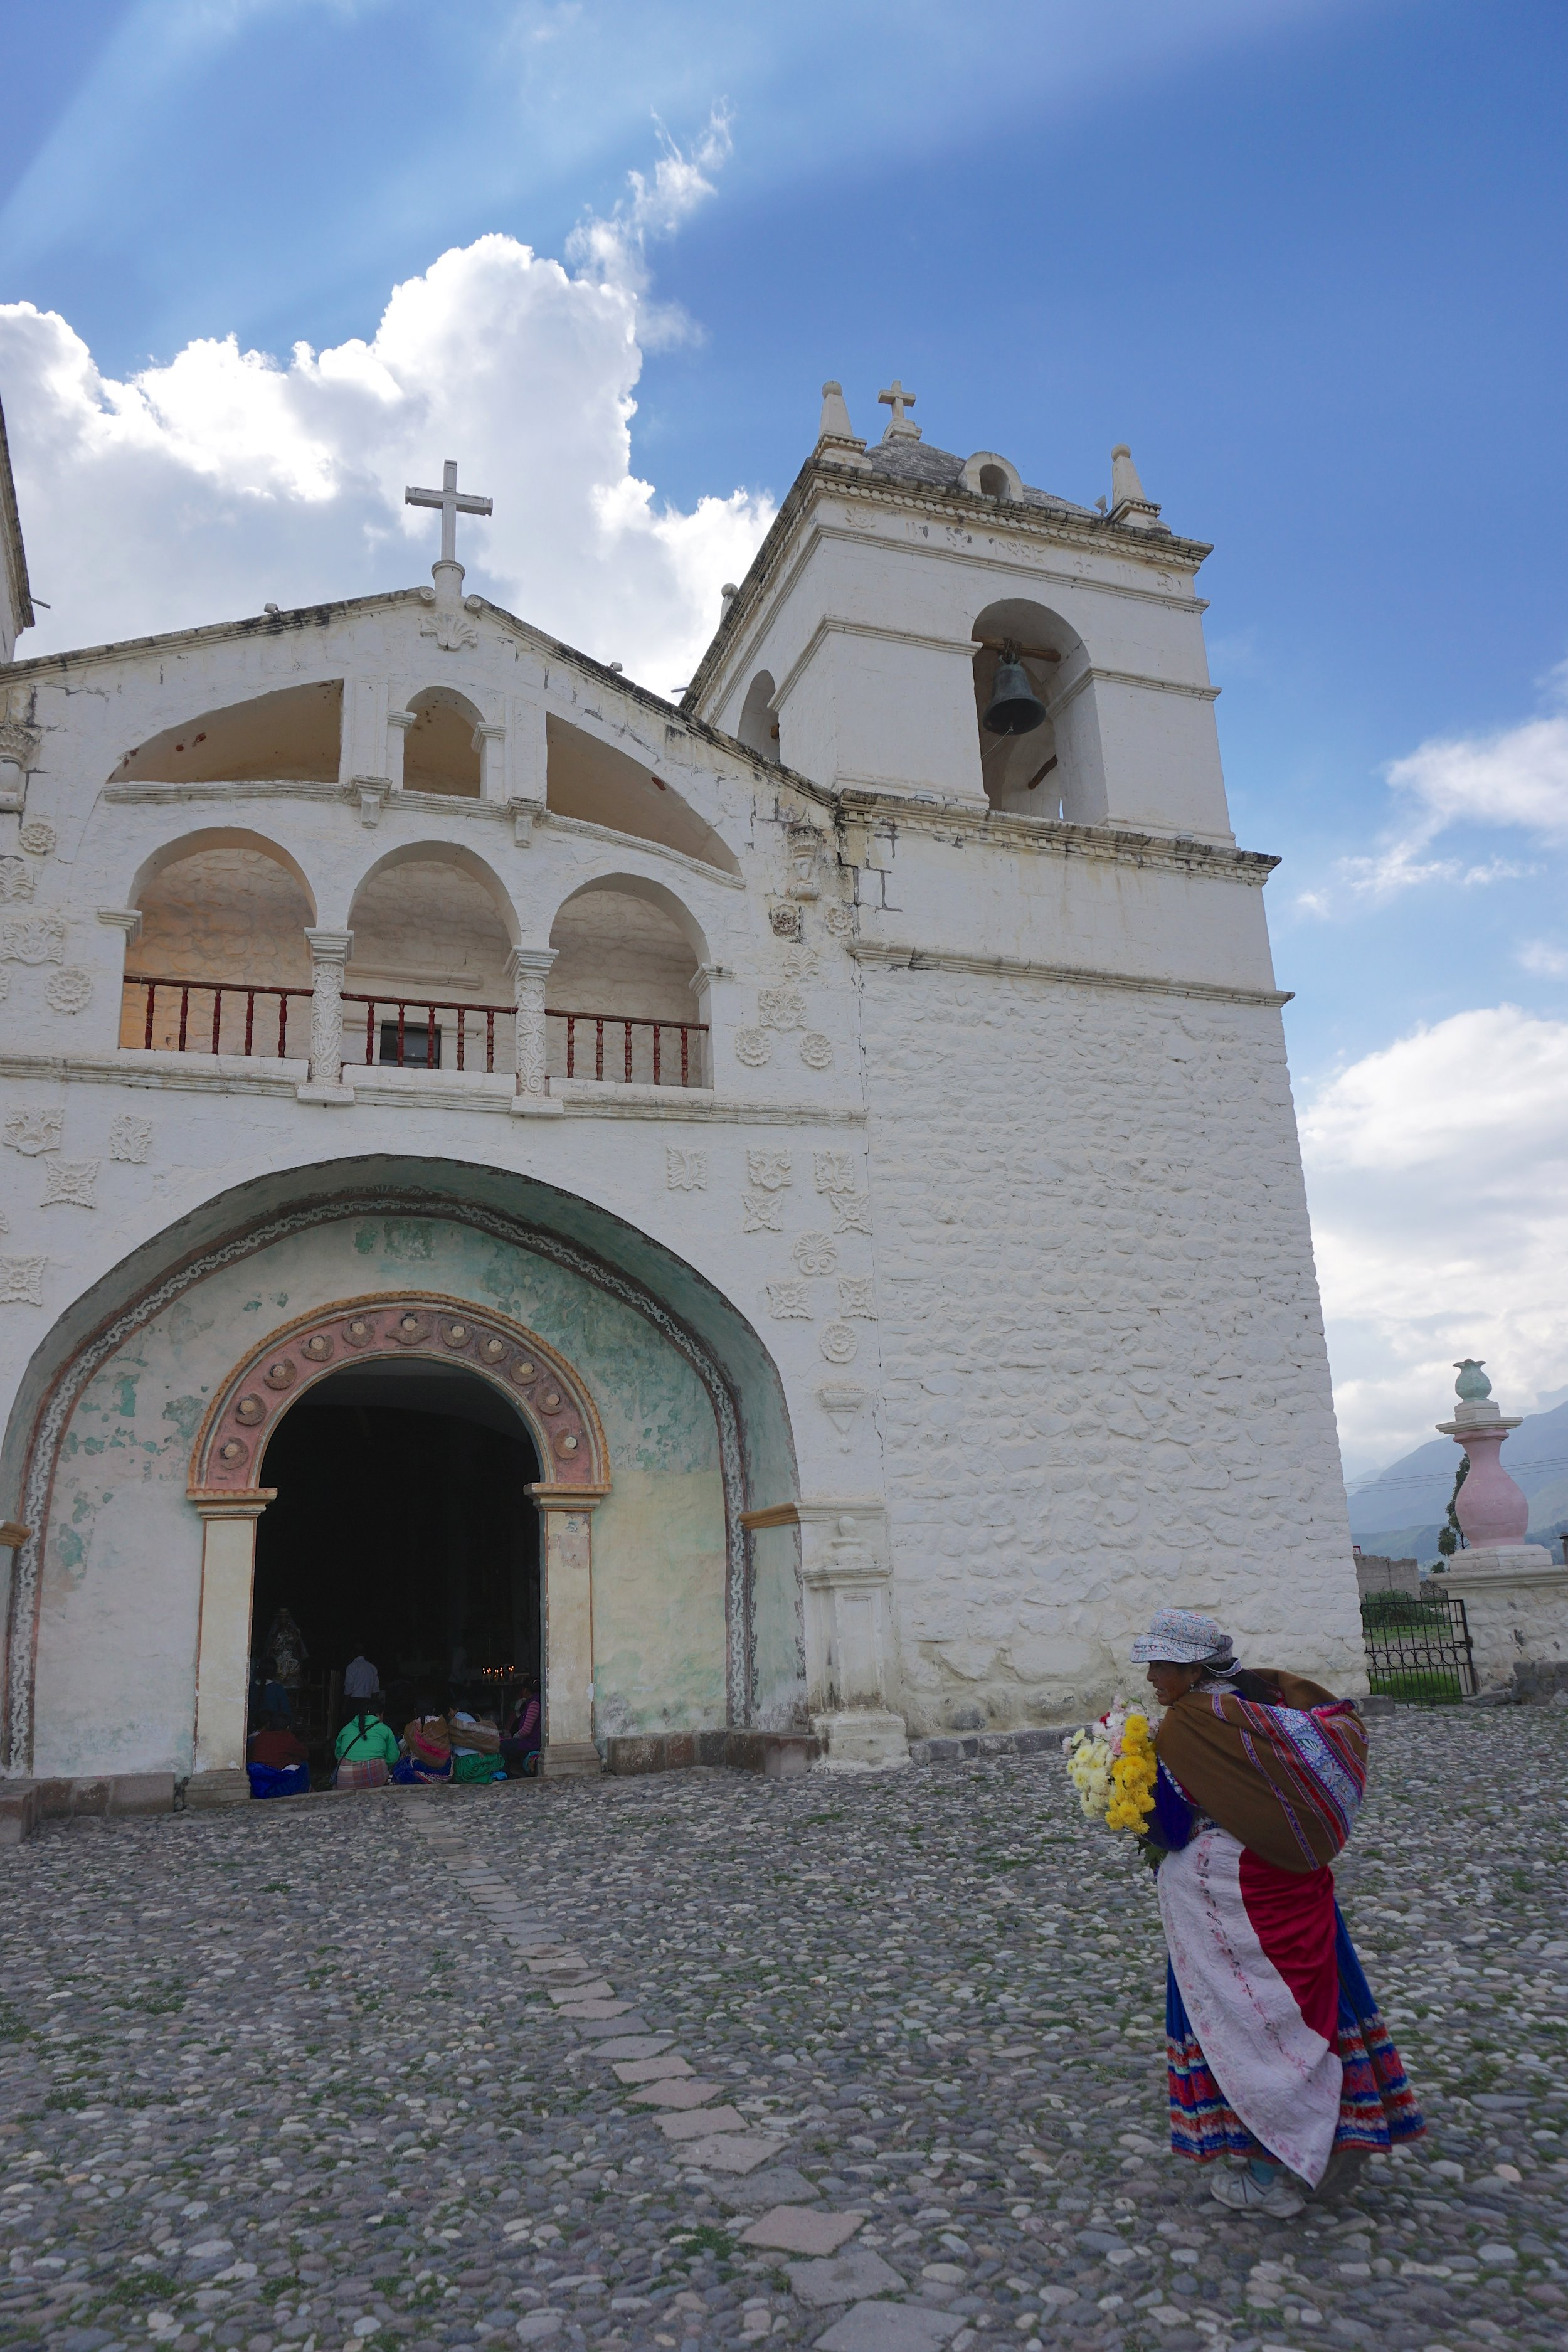 A local woman approaching the town church of Maca in the Colca Valley, on the eve of the Fiesta de la Virgen de Candelaria